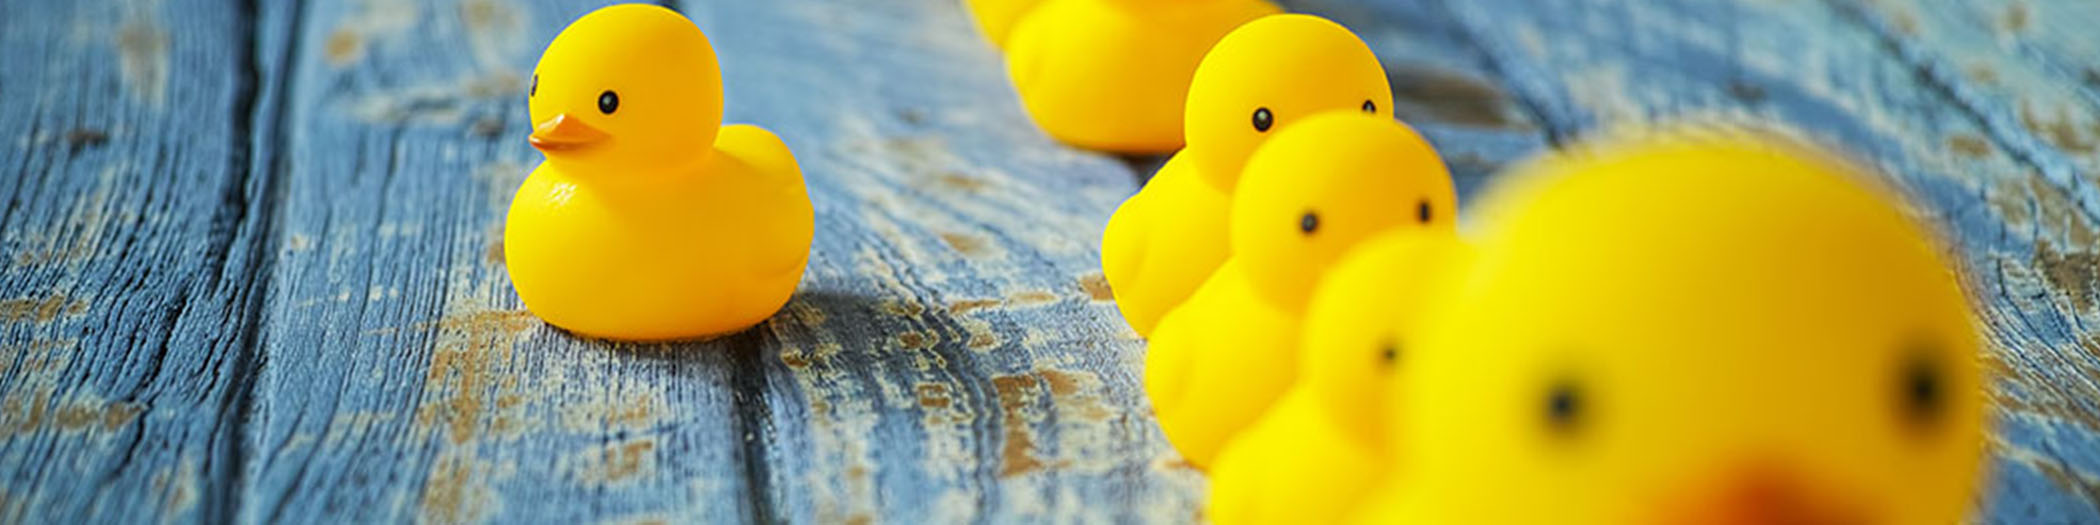 Rubber ducks banner